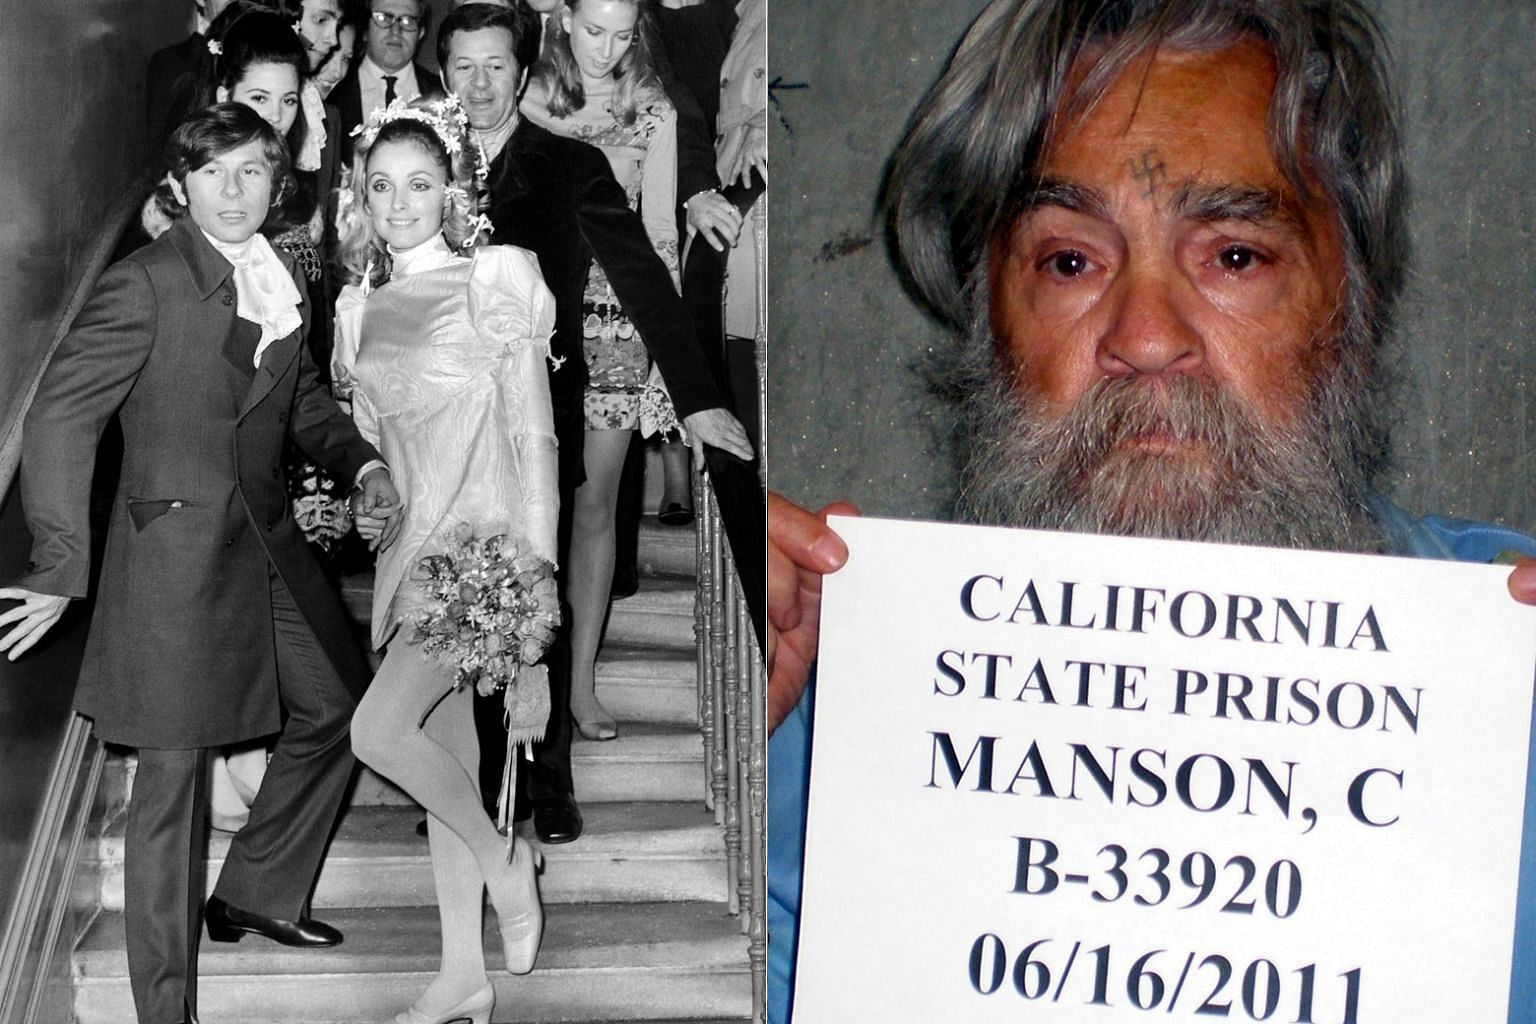 Charles Manson dies: Key facts about the cult leader and the